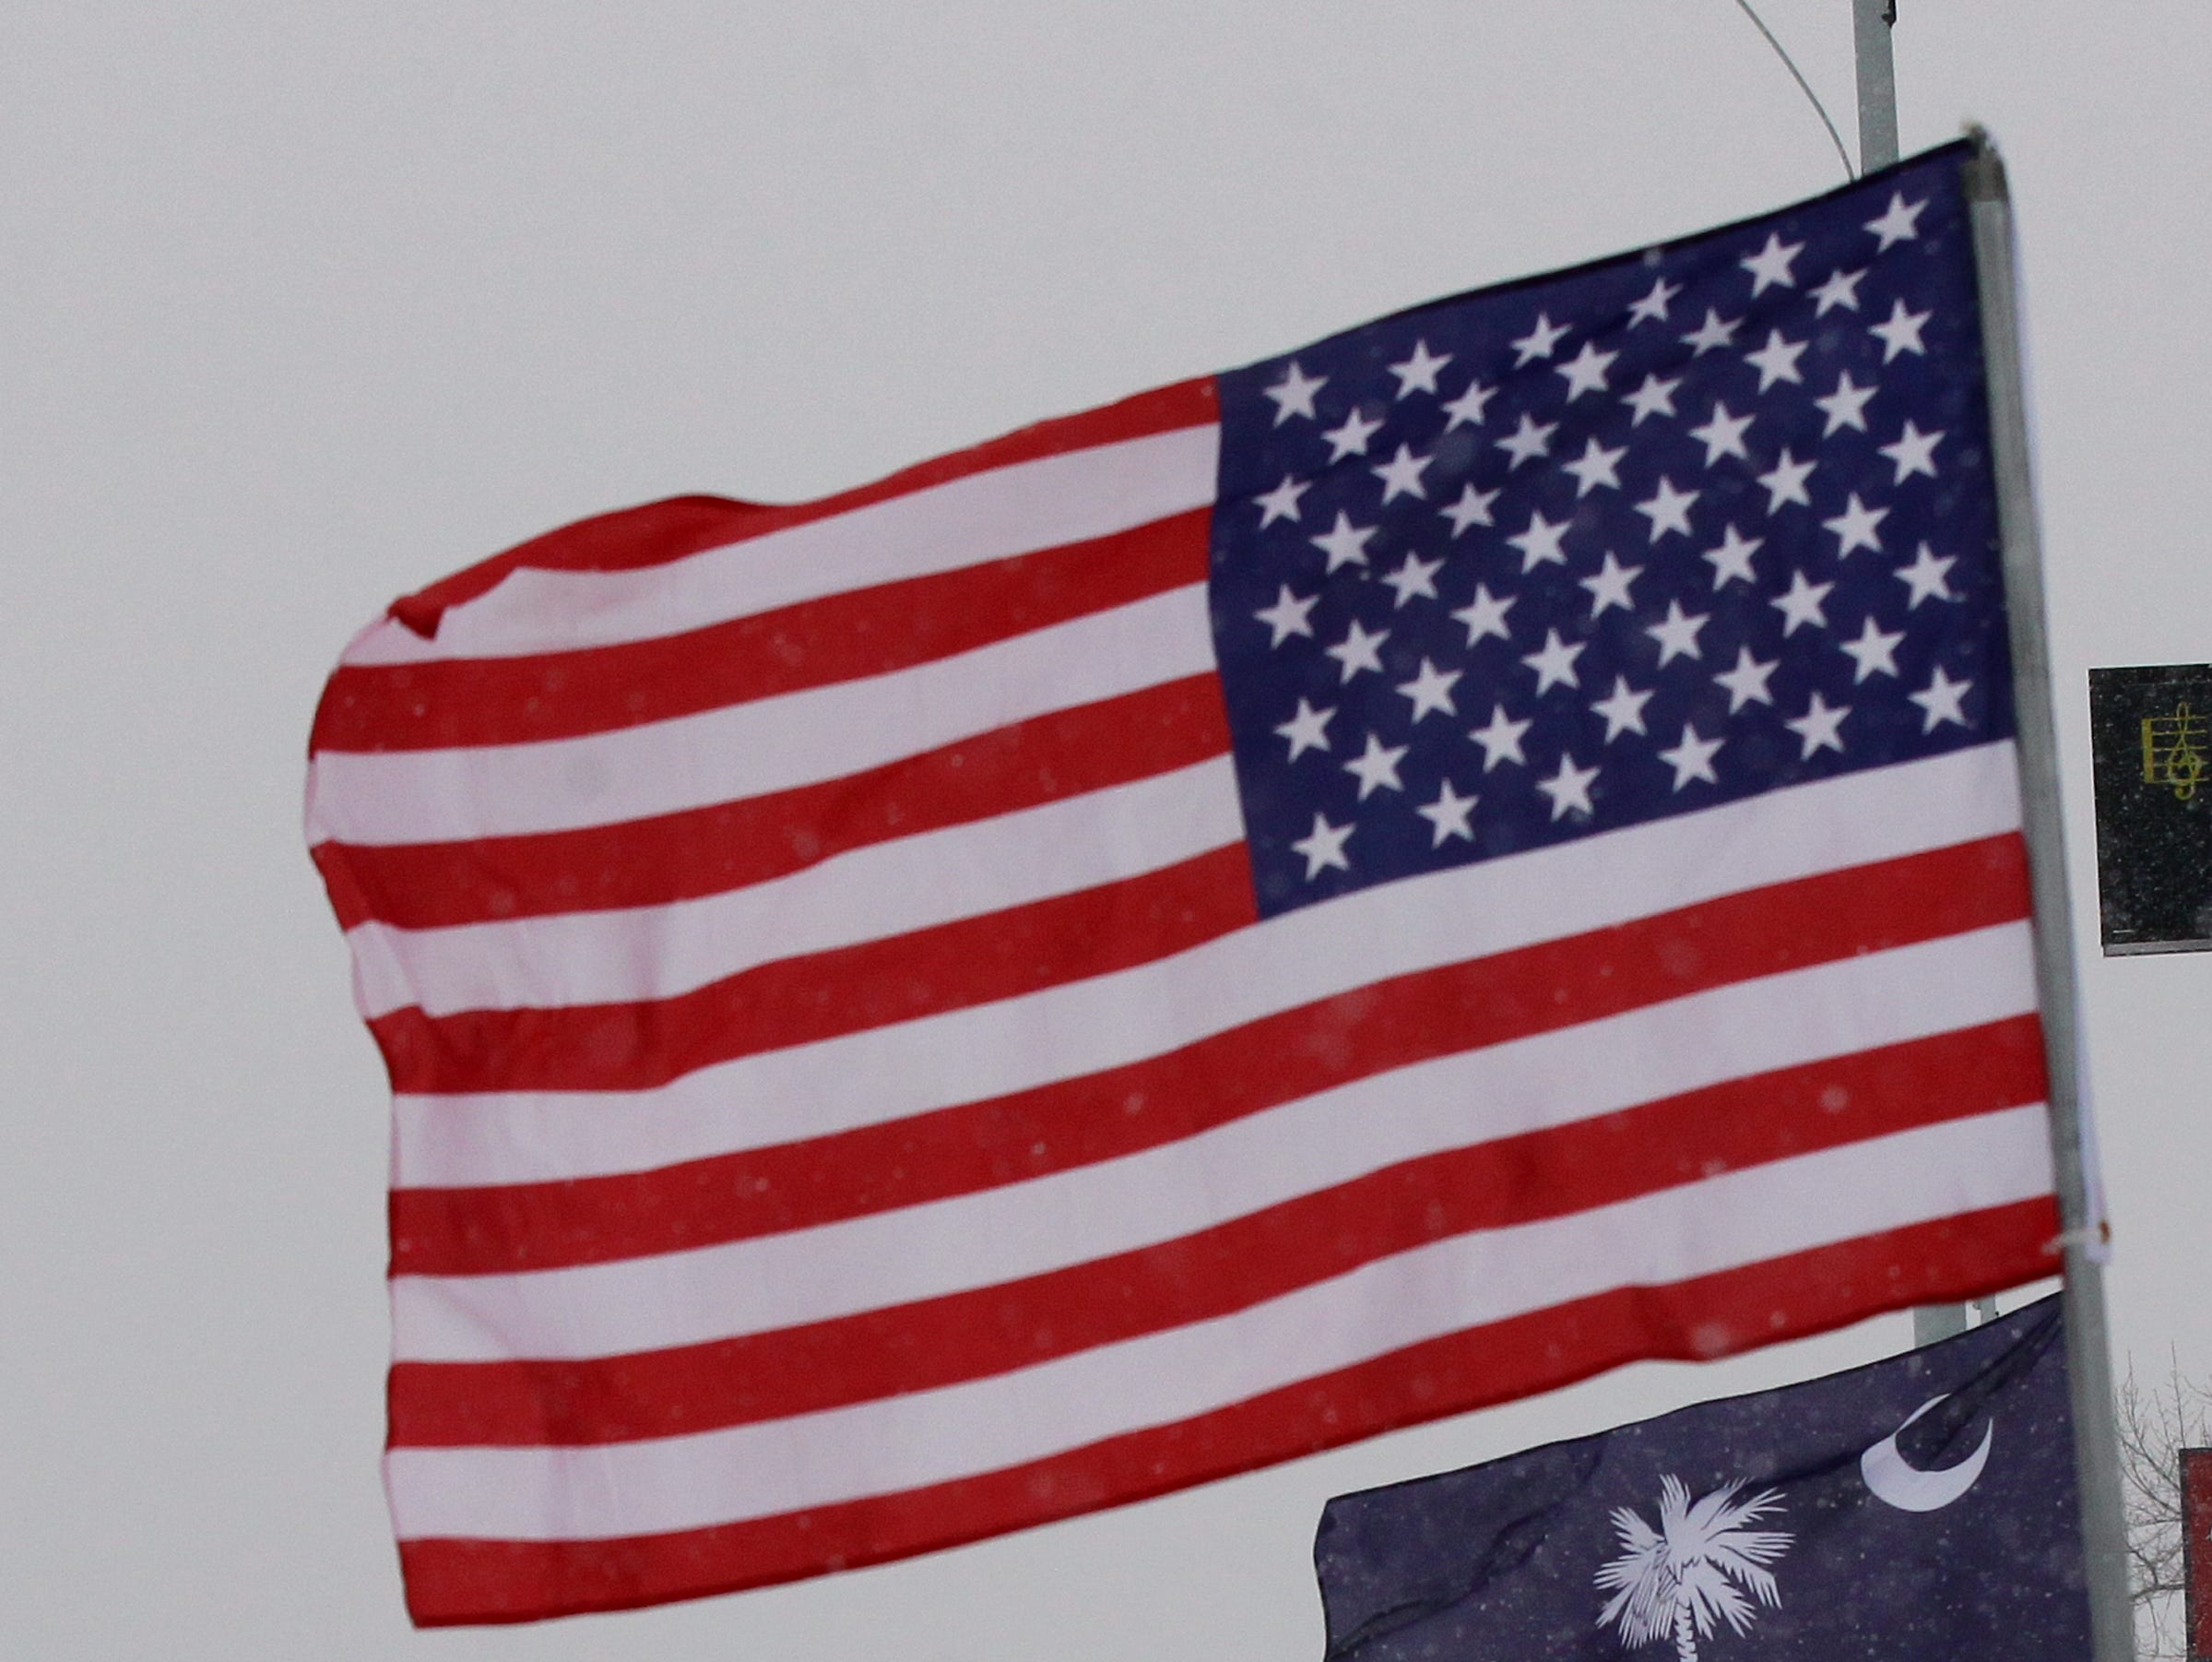 A car drives by flags blowing in the wind and snow on North Main Street in Anderson during the first snow of 2014.